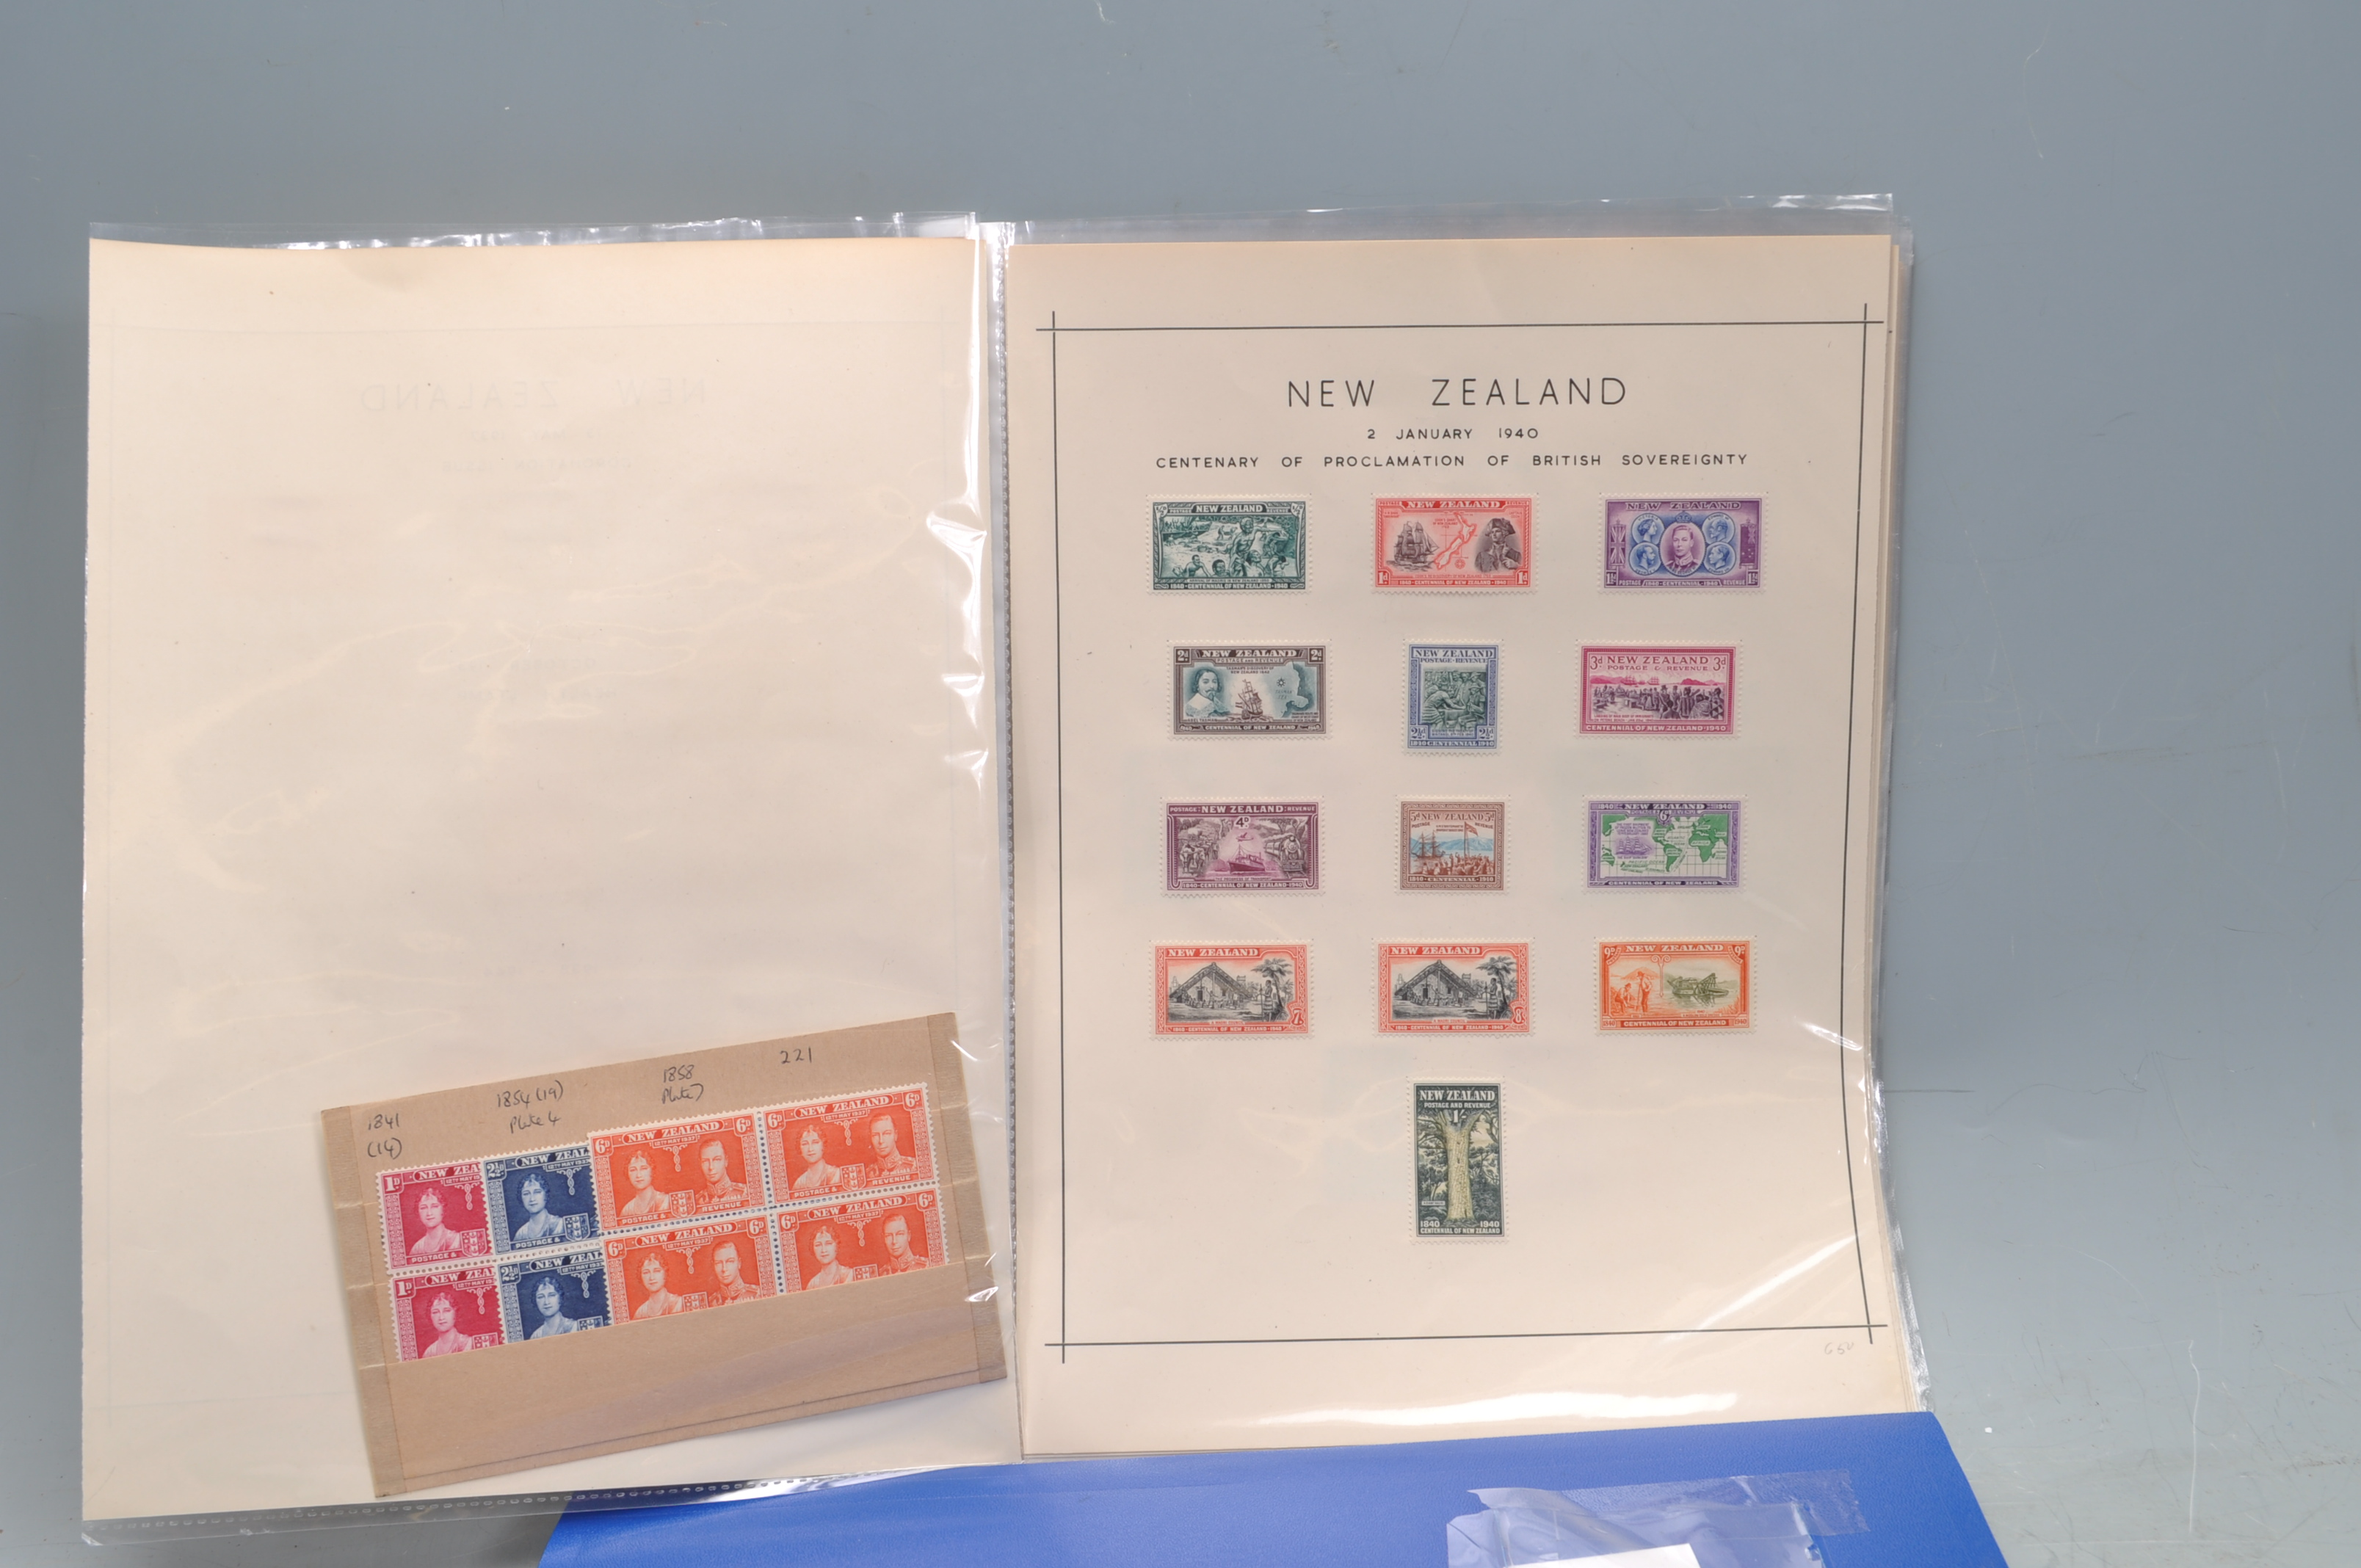 NEW ZEALAND MINT COLLECTION OF POSTAGE STAMPS - Image 3 of 8